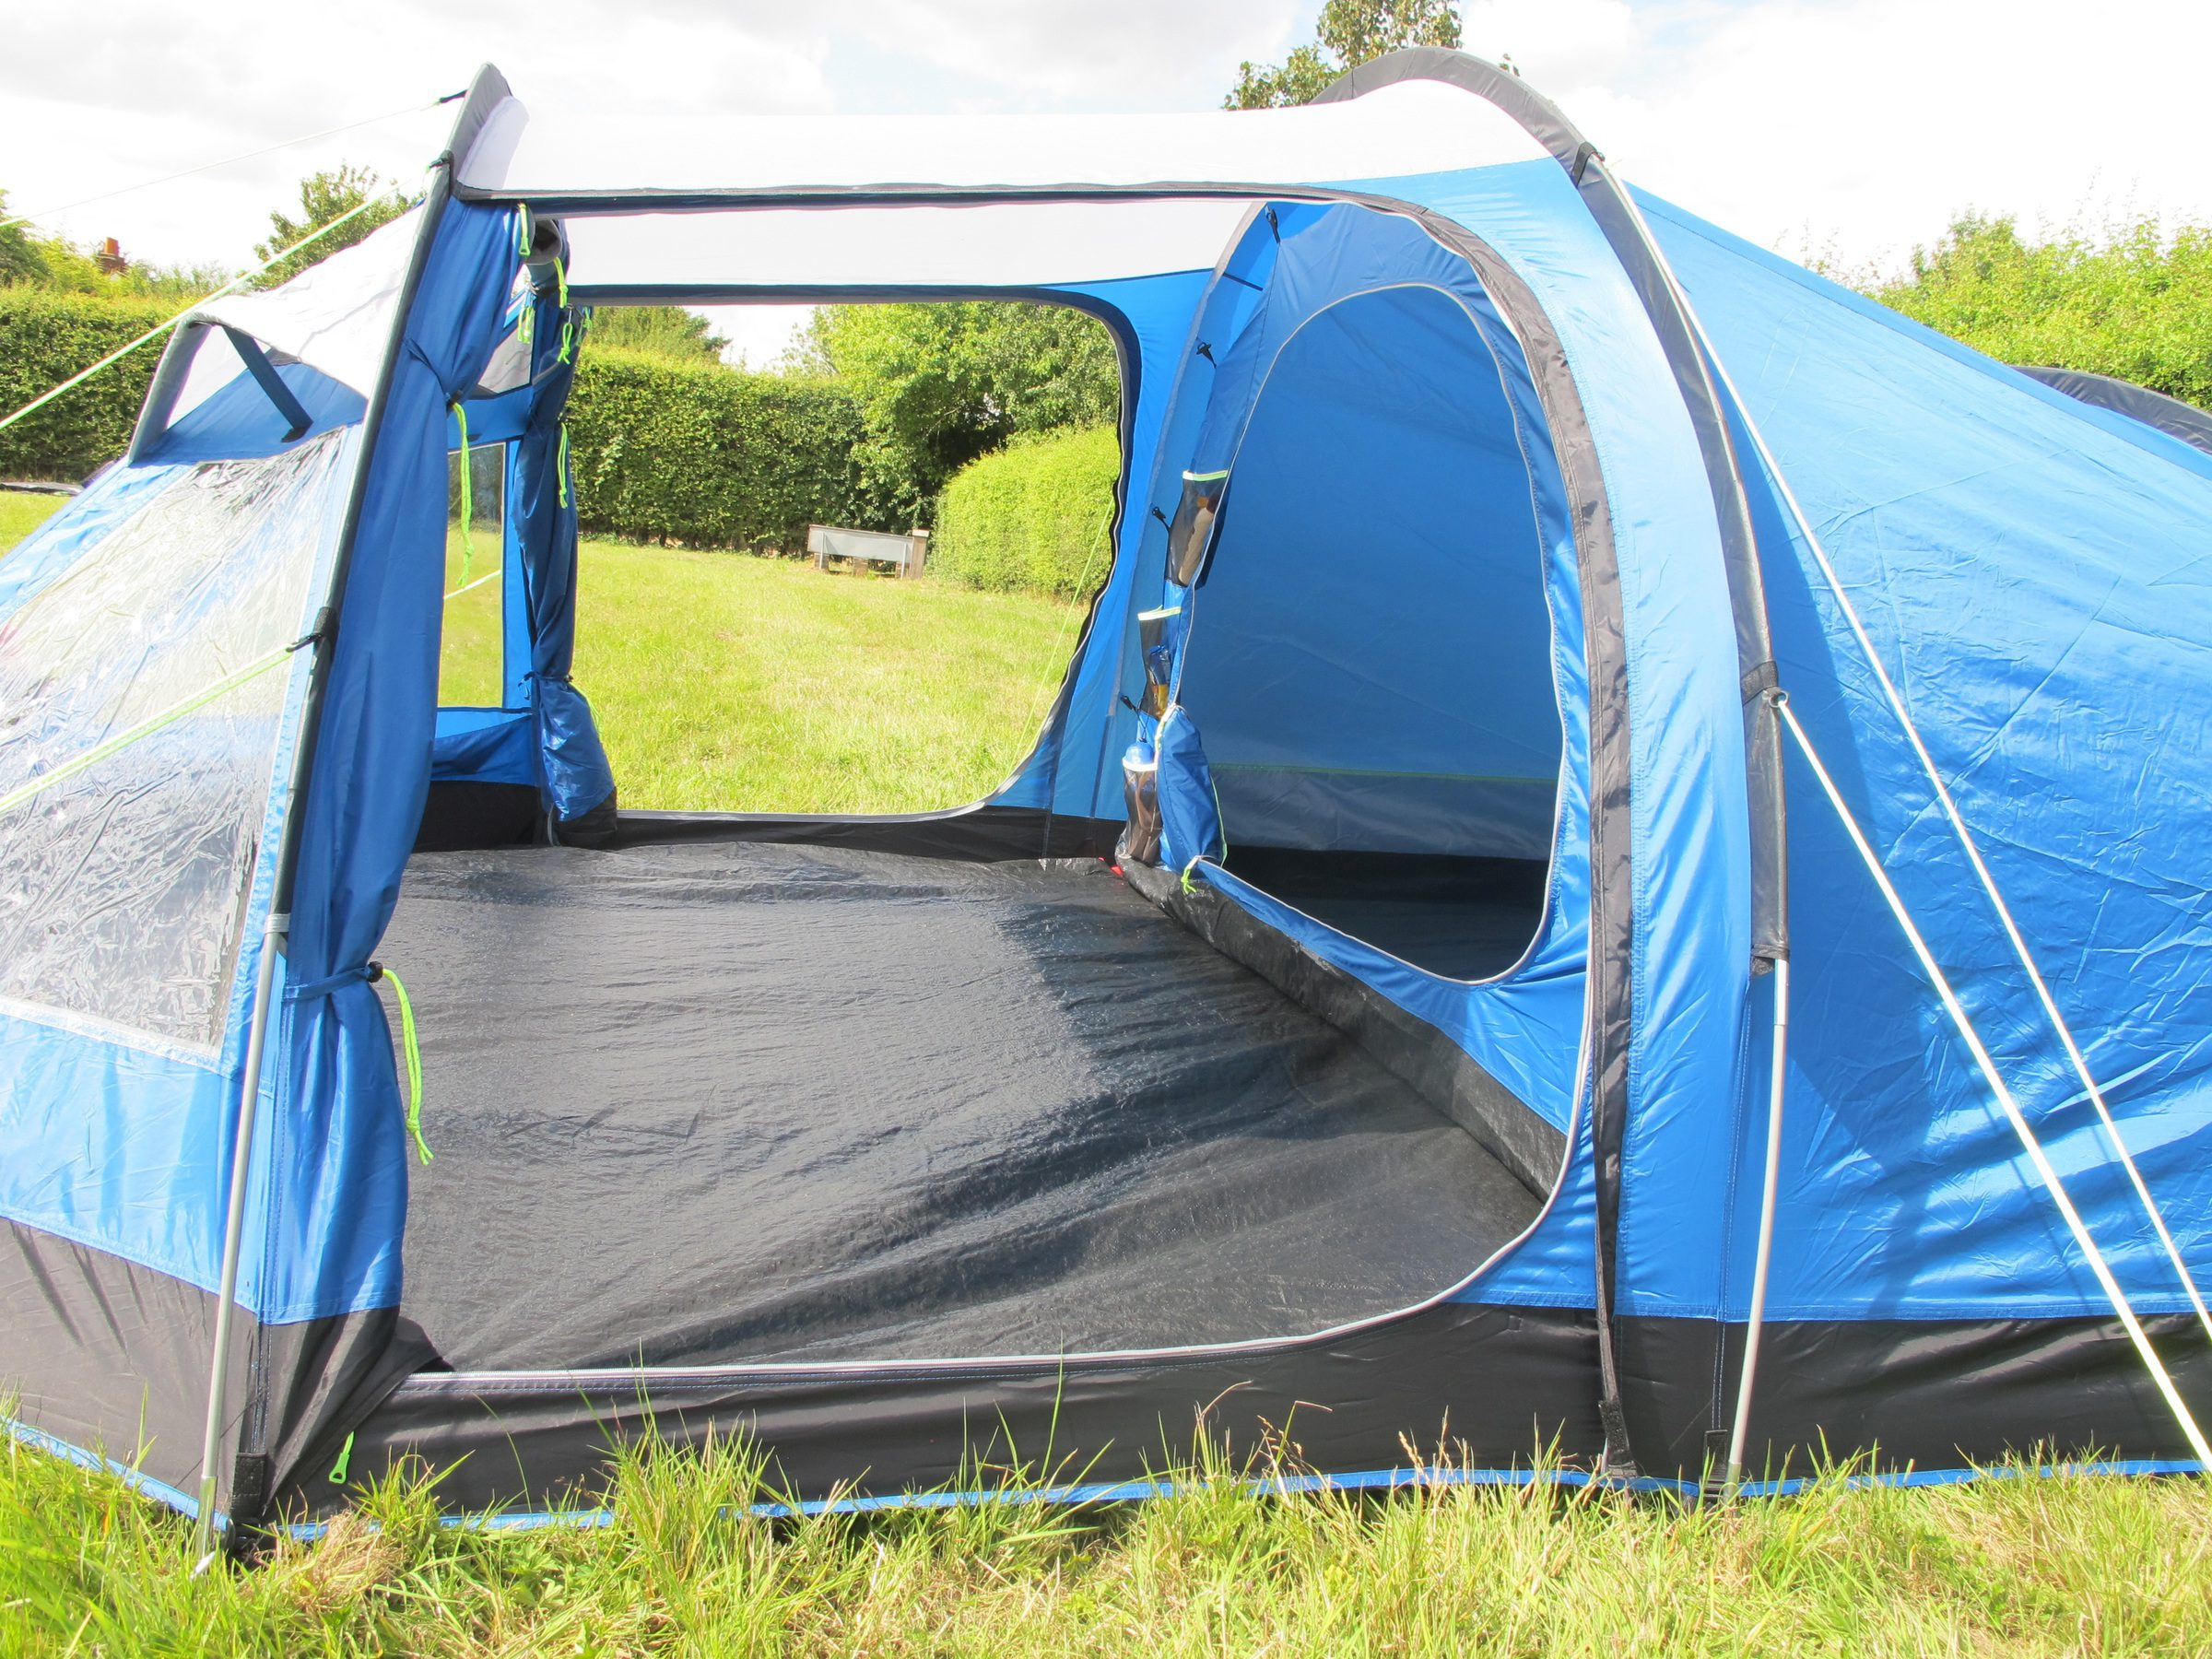 Kampa Mersea 4 tent side